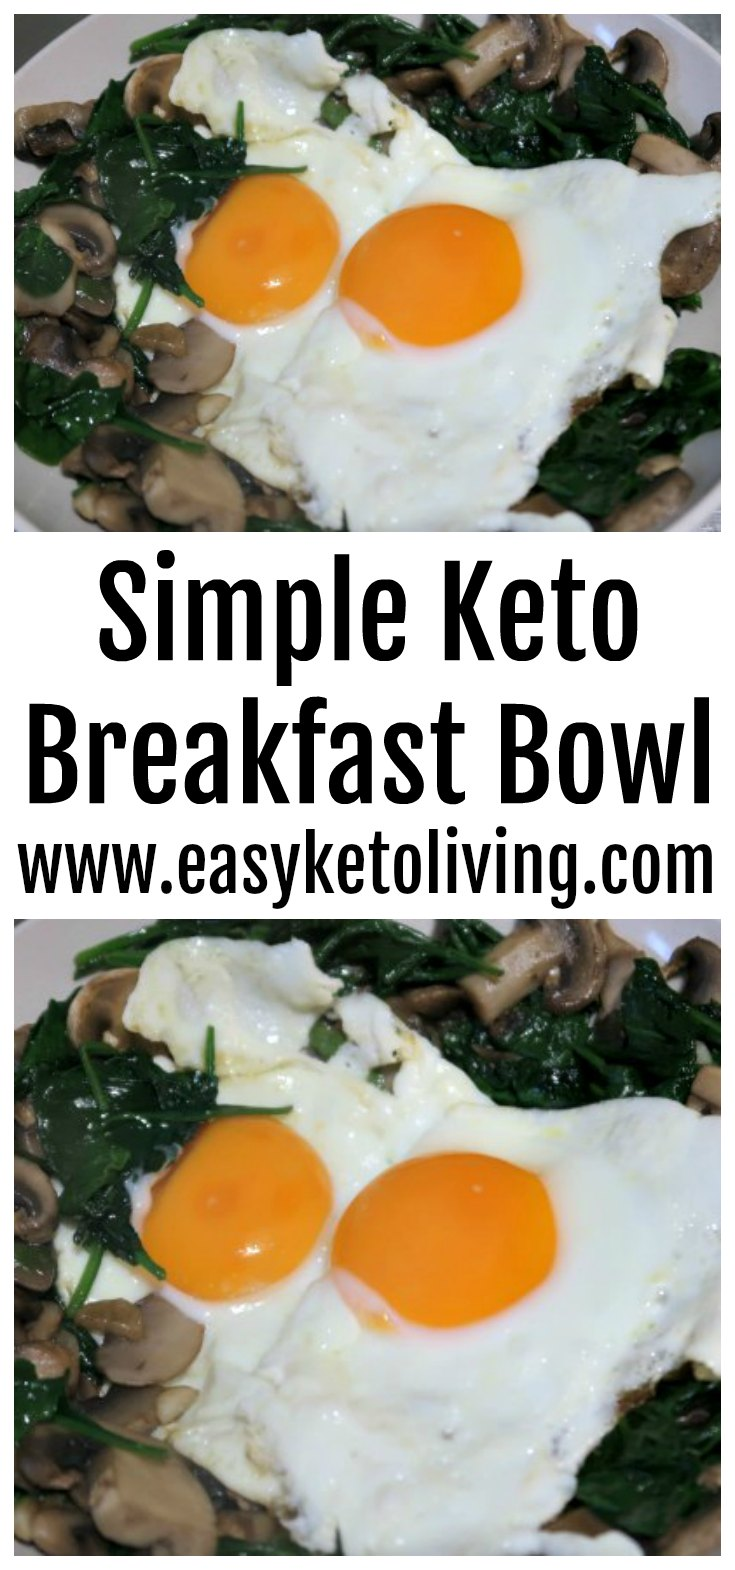 Simple Keto Breakfast Bowl Recipe - Low Carb Garlic Veggies and Fried Eggs Breakfast Idea